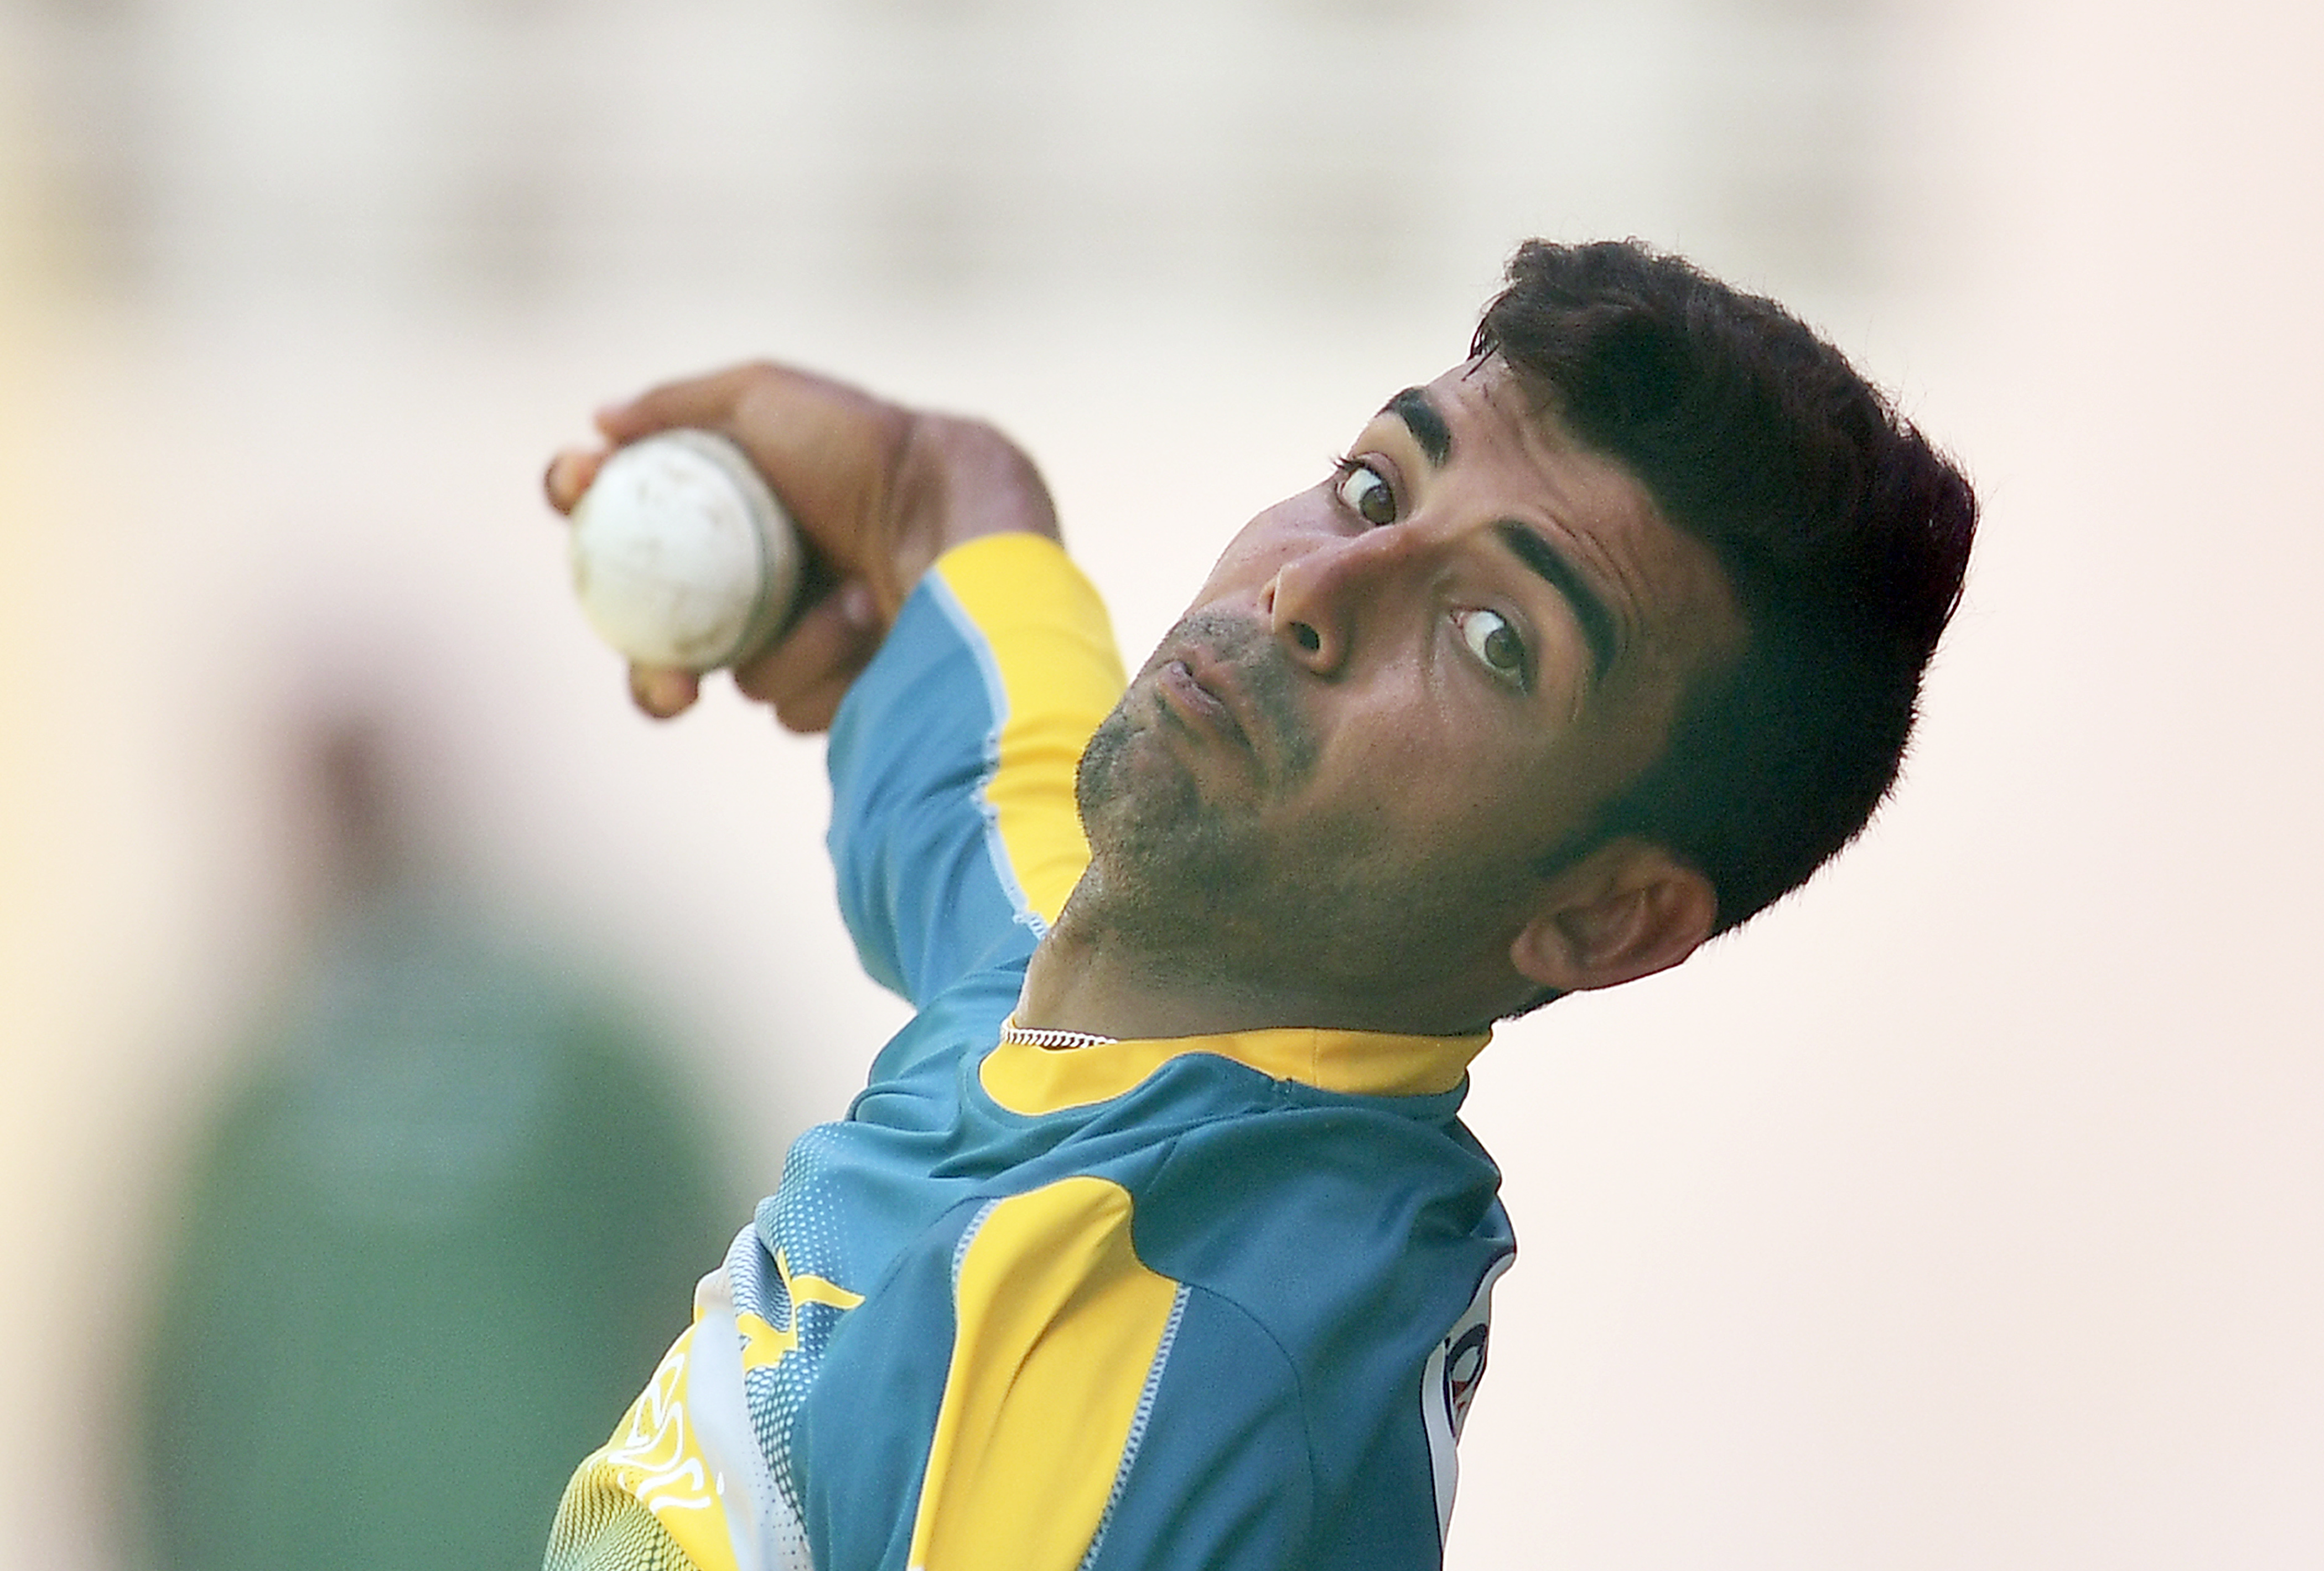 Pakistan's Shadab Khan delives a ball during a practice session at the Queen's Park Oval in Port of Spain, Trinidad, on March 28, 2017. / AFP PHOTO / Jewel SAMAD